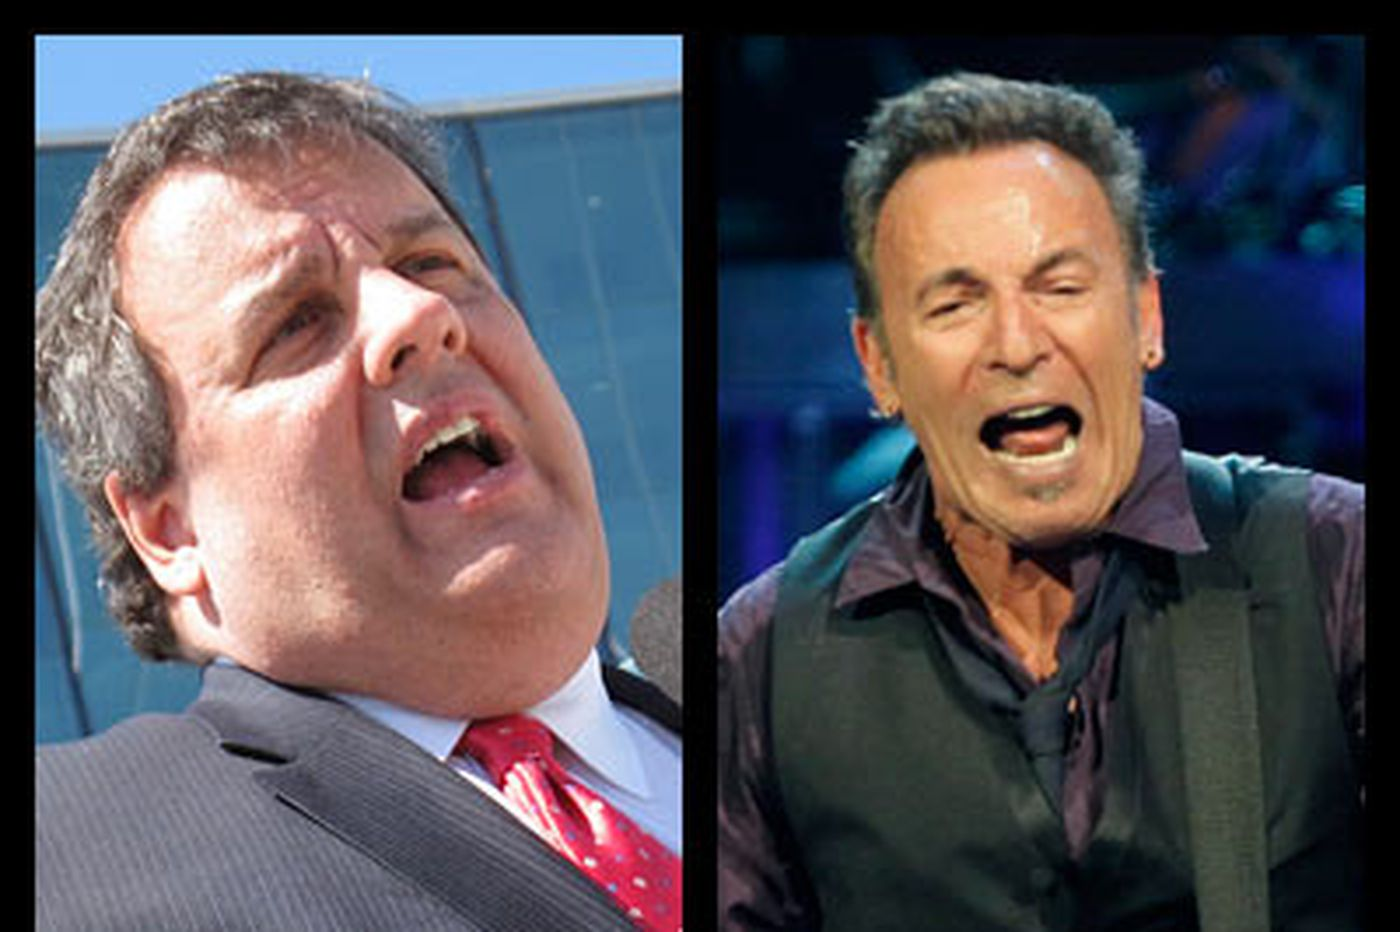 Christie says no way he was sleeping at Springsteen show